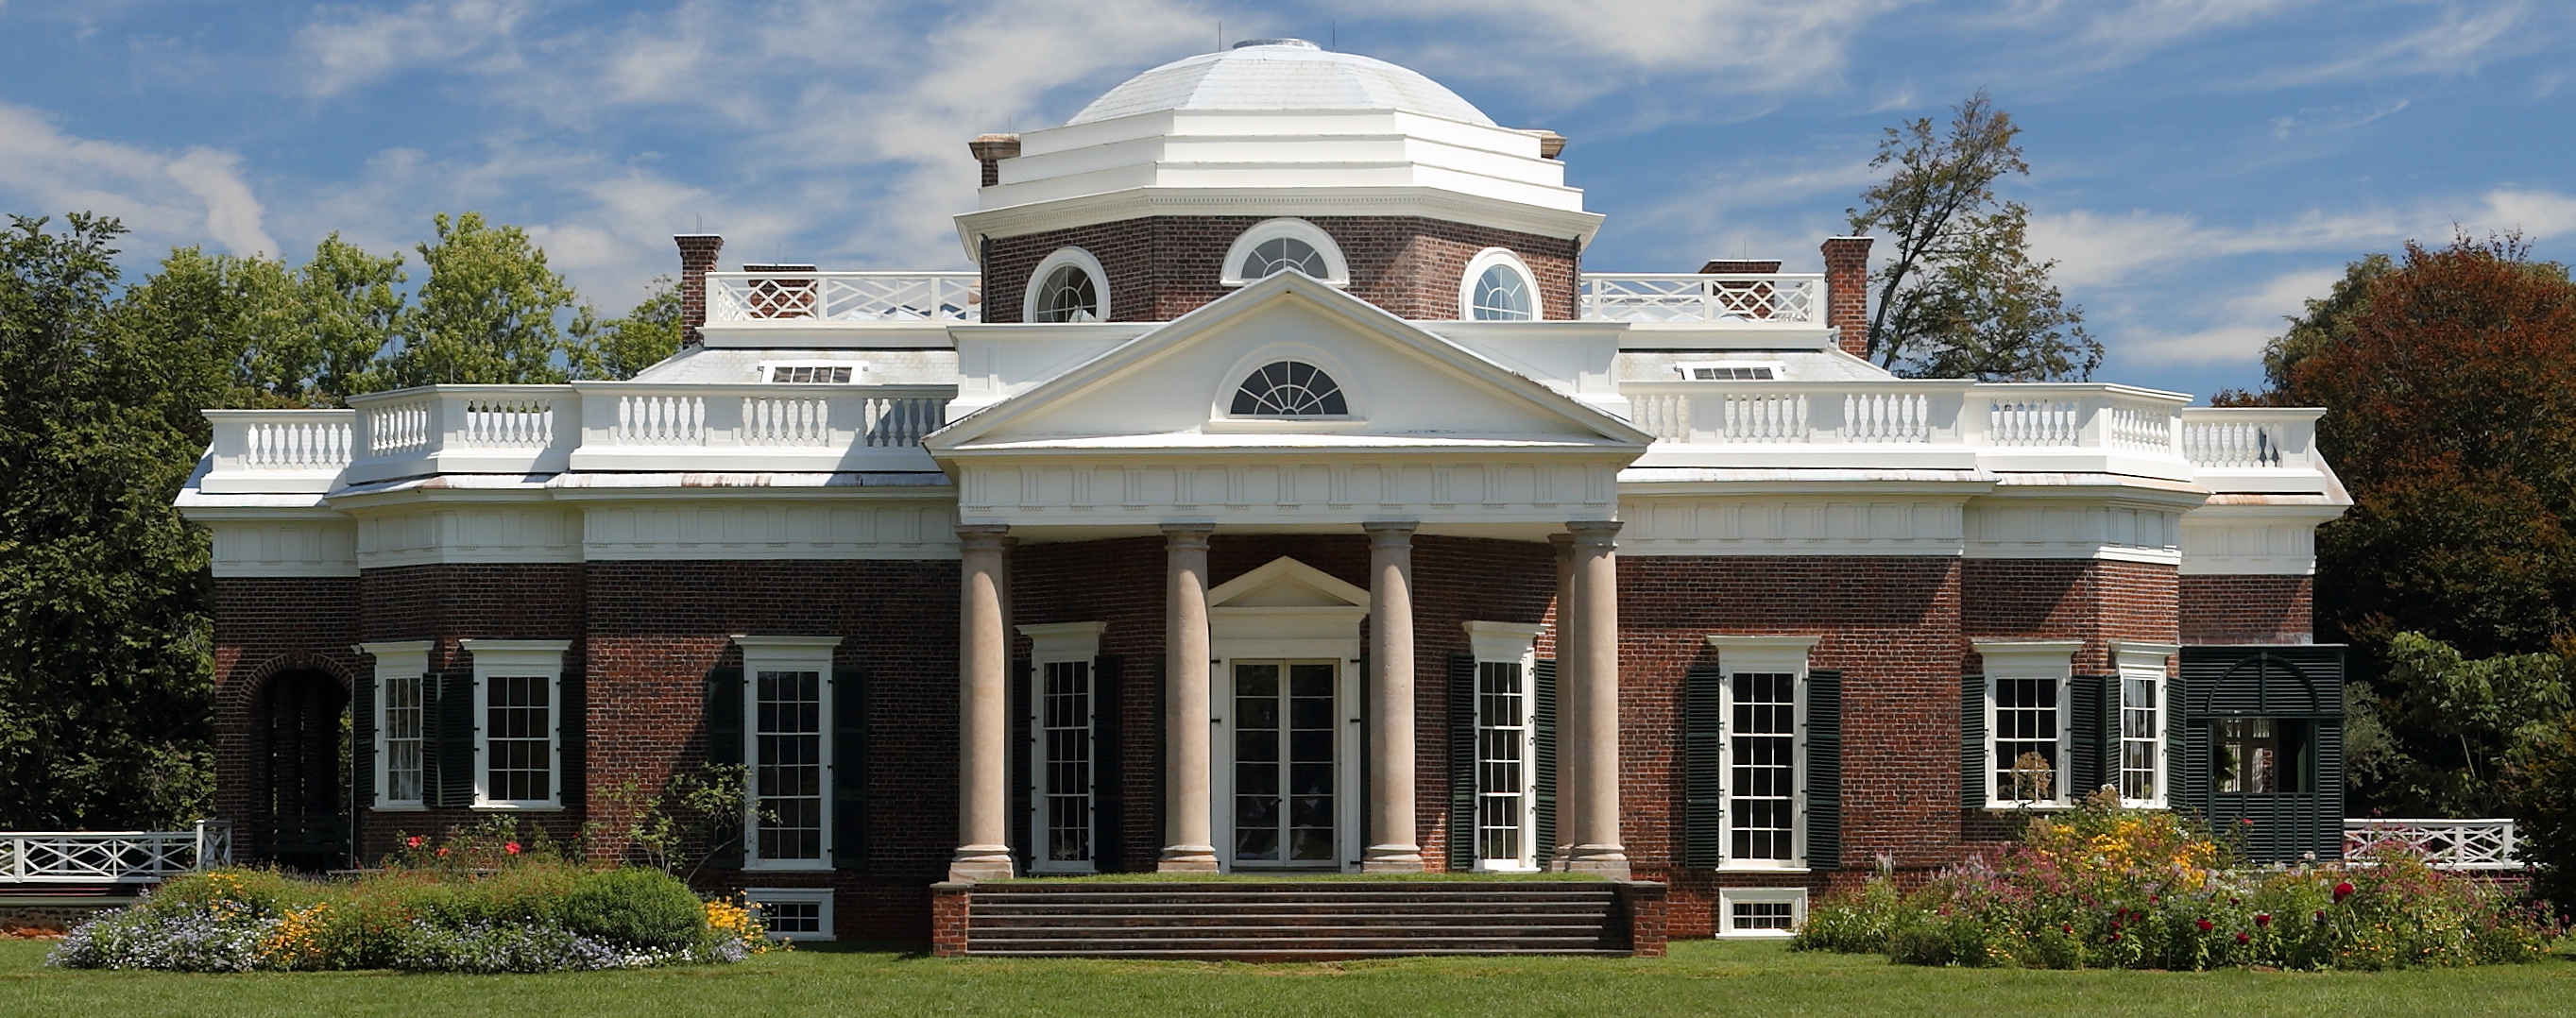 Monticello Thomas Jefferson S